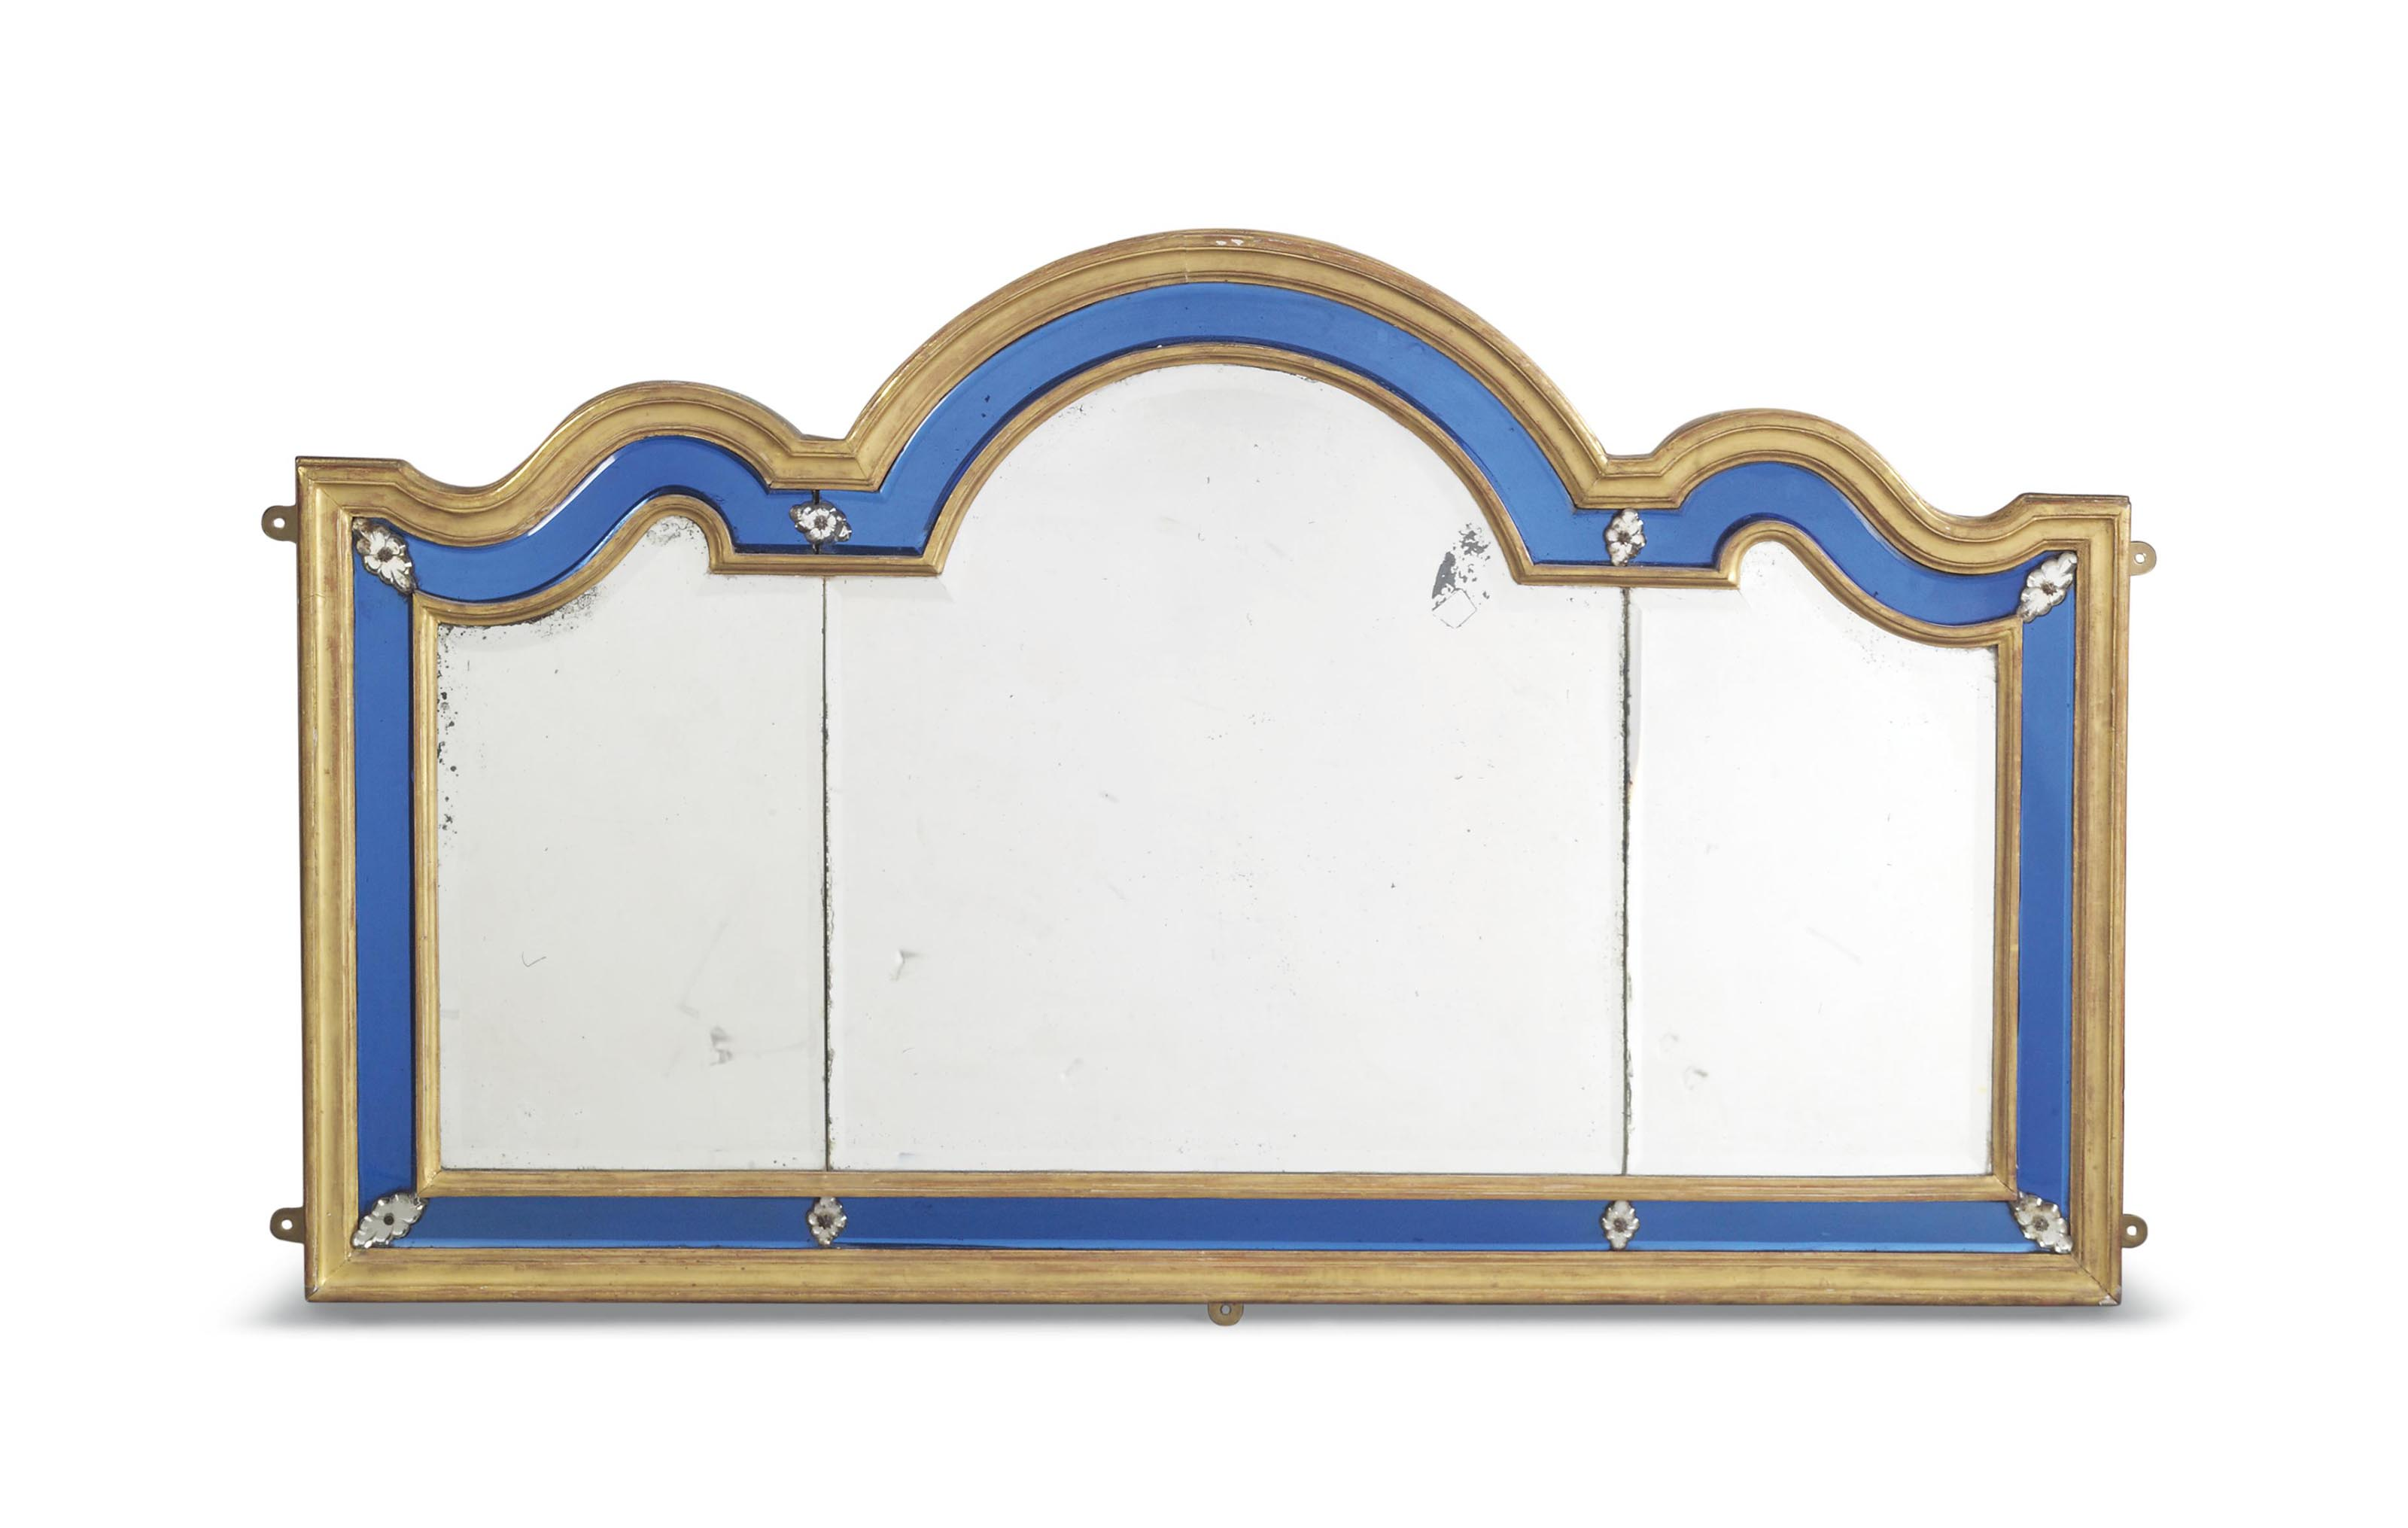 A GILTWOOD AND BLUE GLASS TRIP